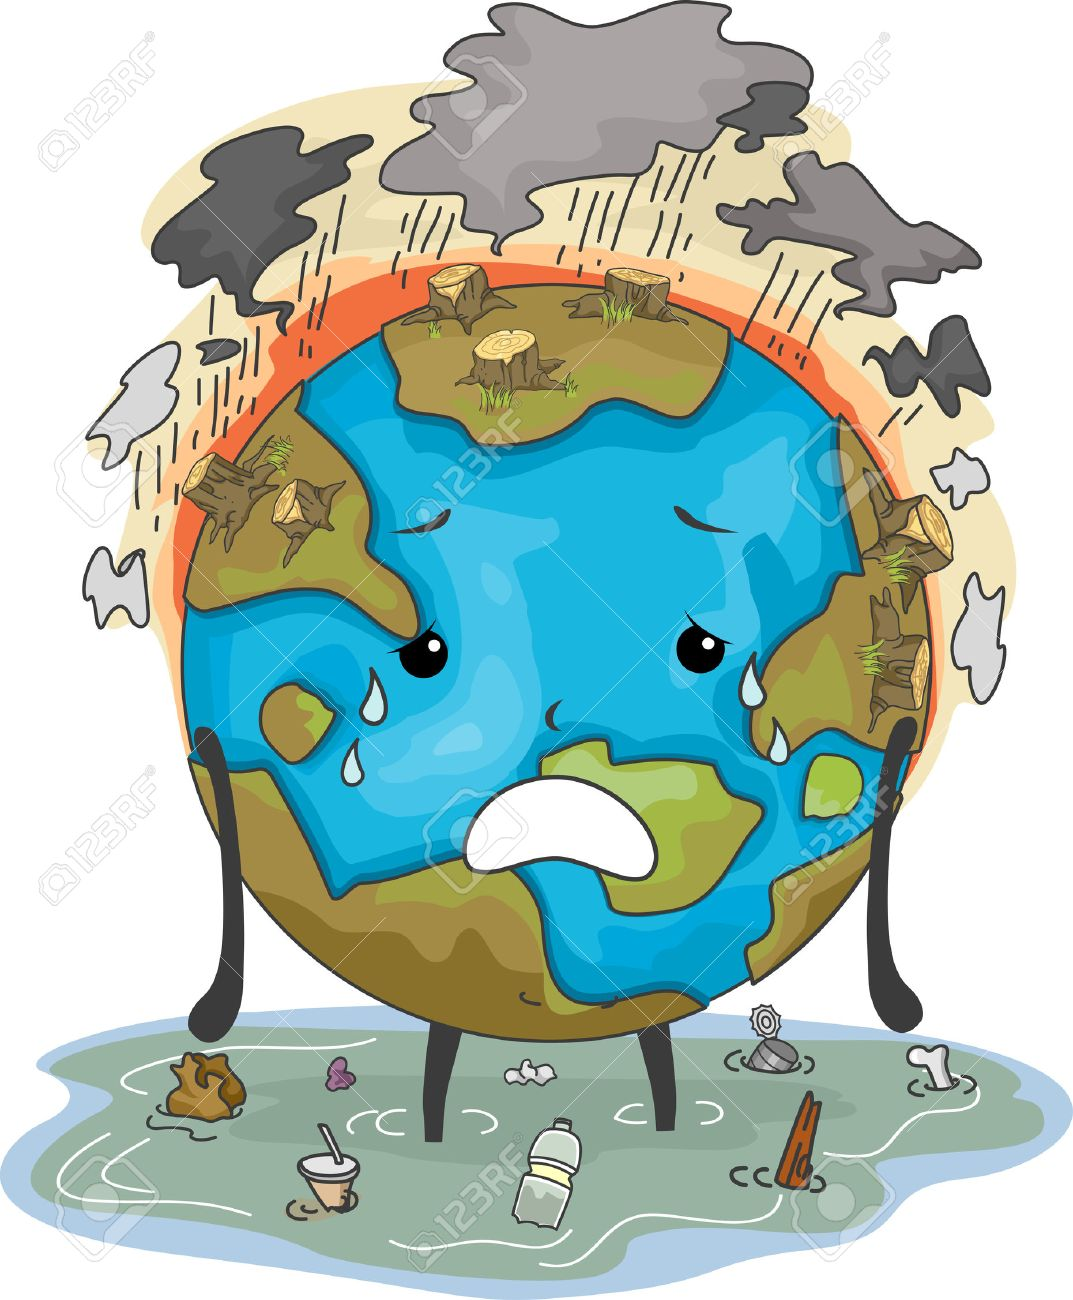 mascot illustration featuring the earth suffering from flooding rh 123rf com air pollution clipart black and white air pollution prevention clipart